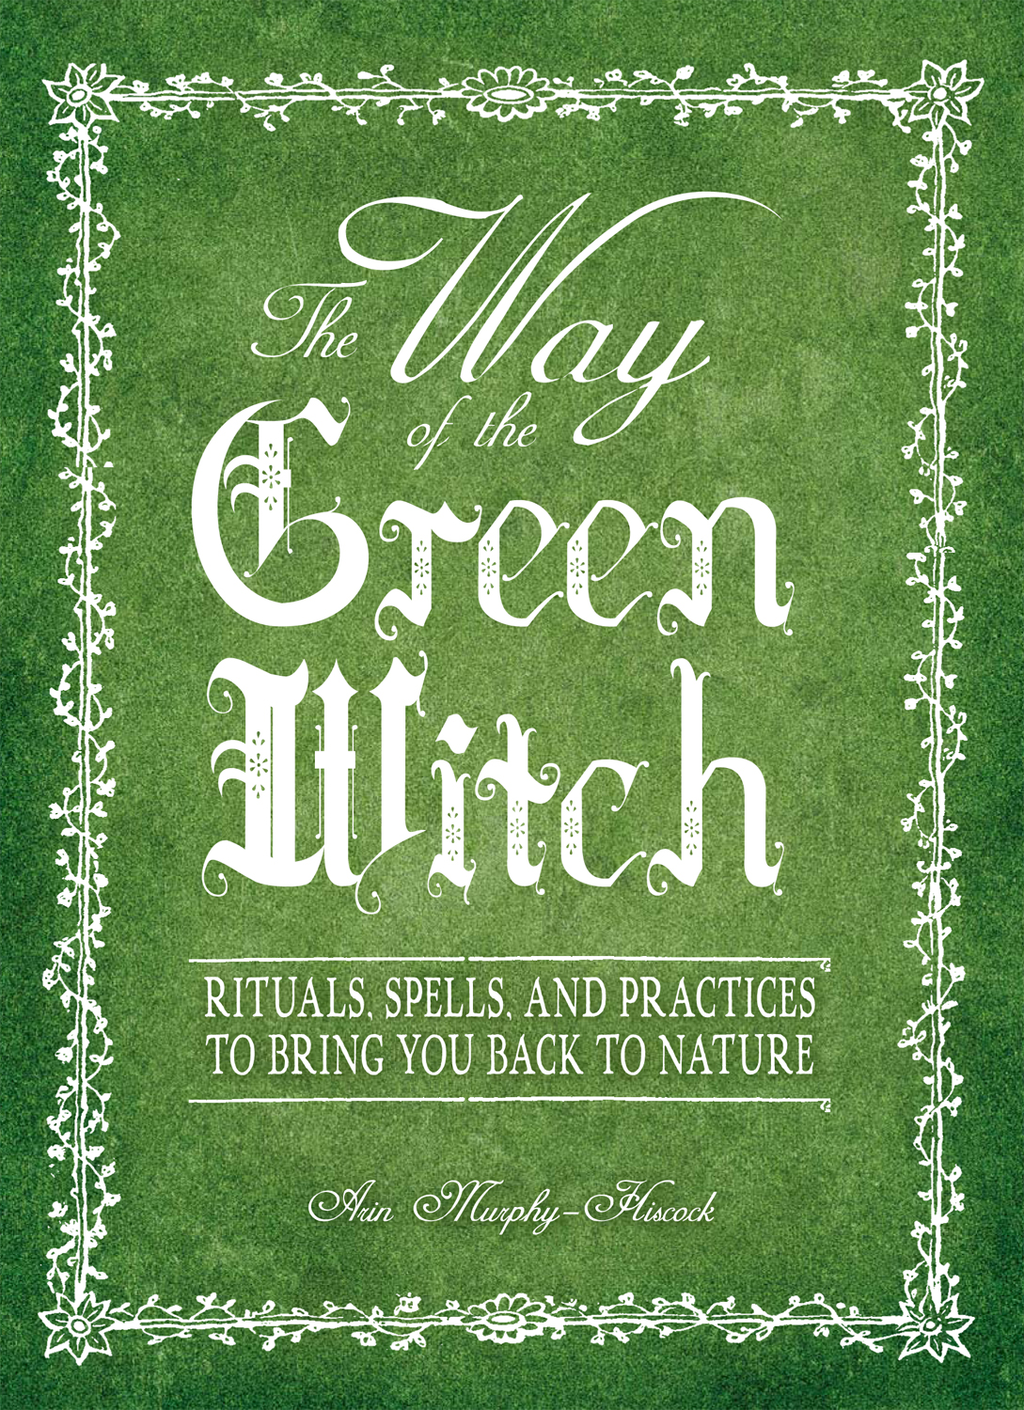 The Way Of The Green Witch Rituals,  Spells,  And Practices to Bring You Back to Nature